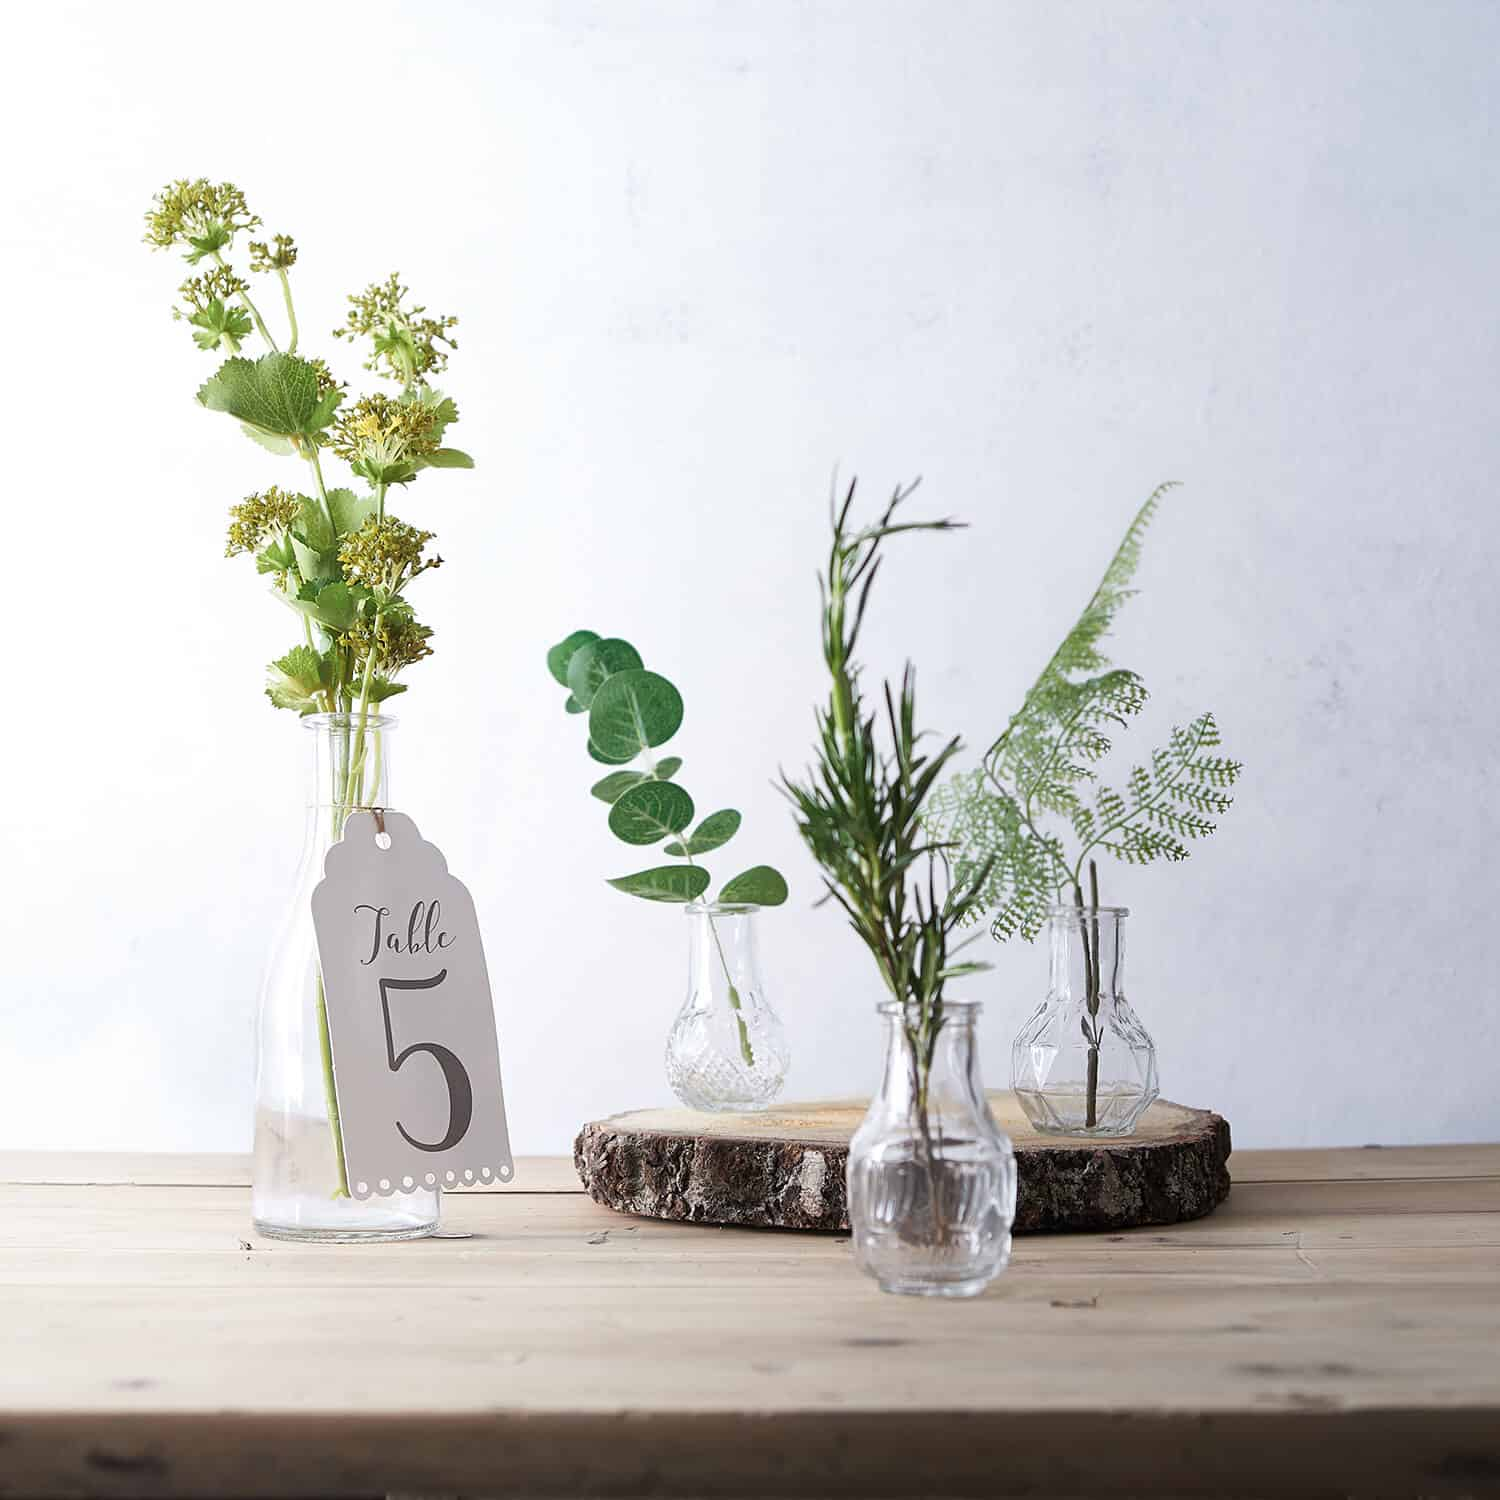 Diffused lighting in this product photograph for a florist